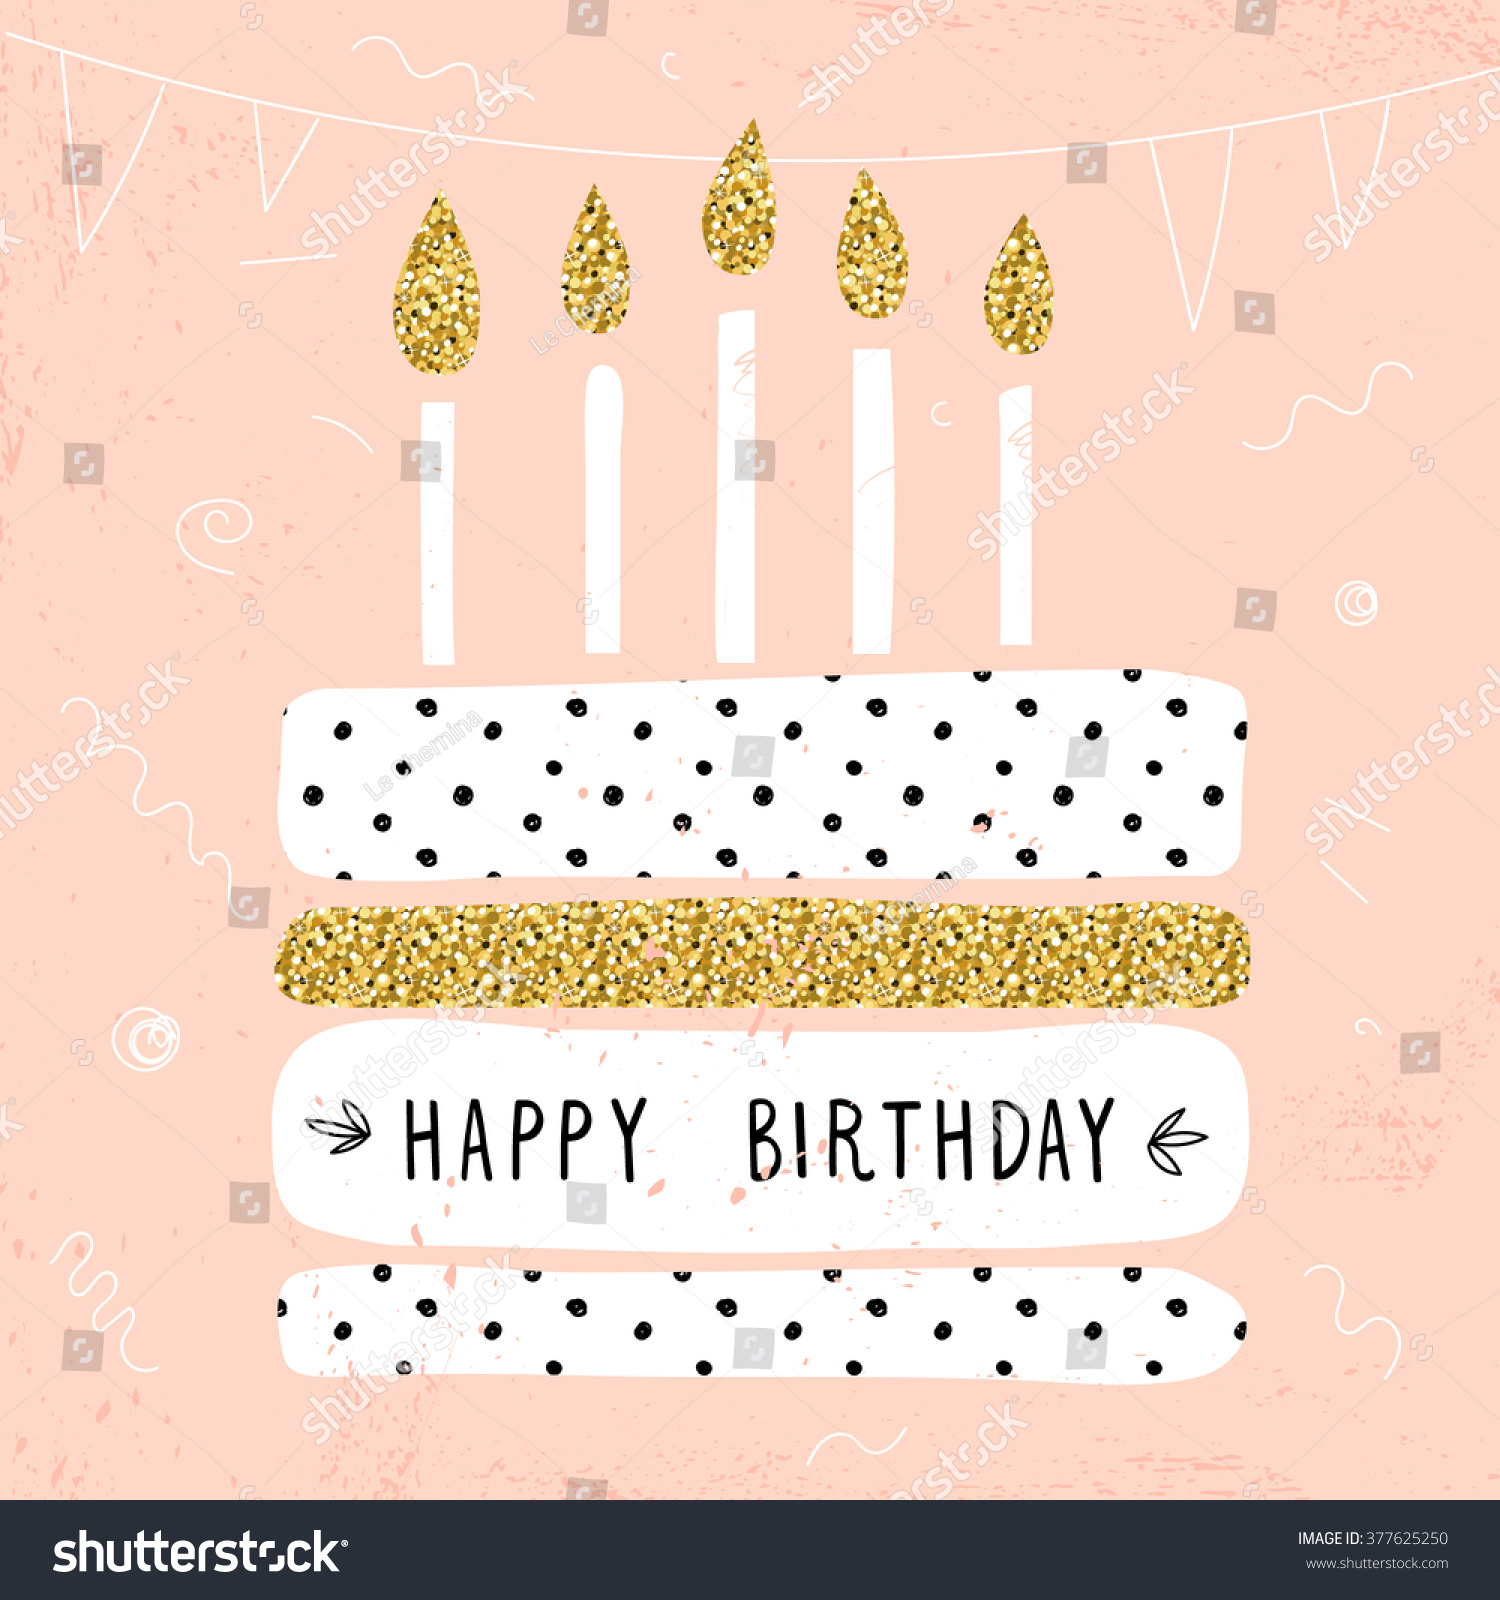 Cute Happy Birthday Card With Cake And Candles. Vector